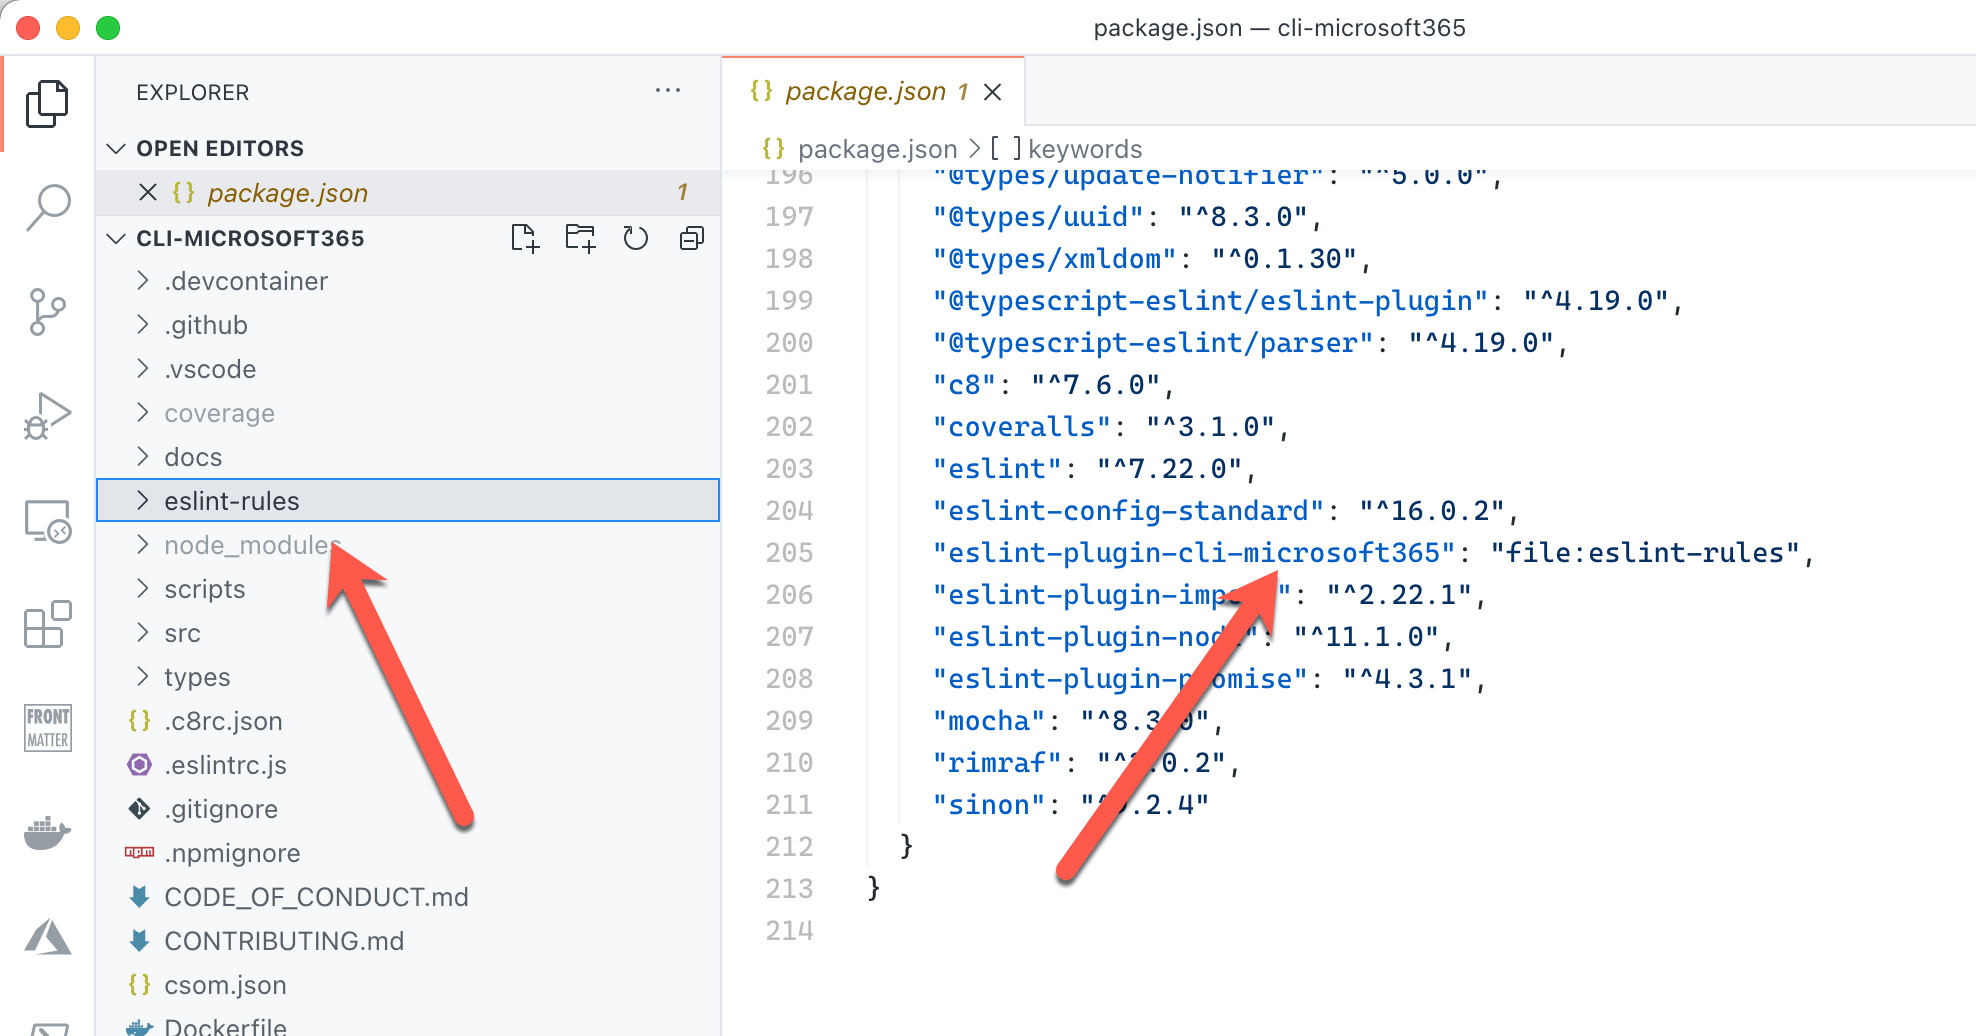 Arrow pointing to the subfolder with custom eslint rules. Another arrow pointing to a line in package.json referring to that folder